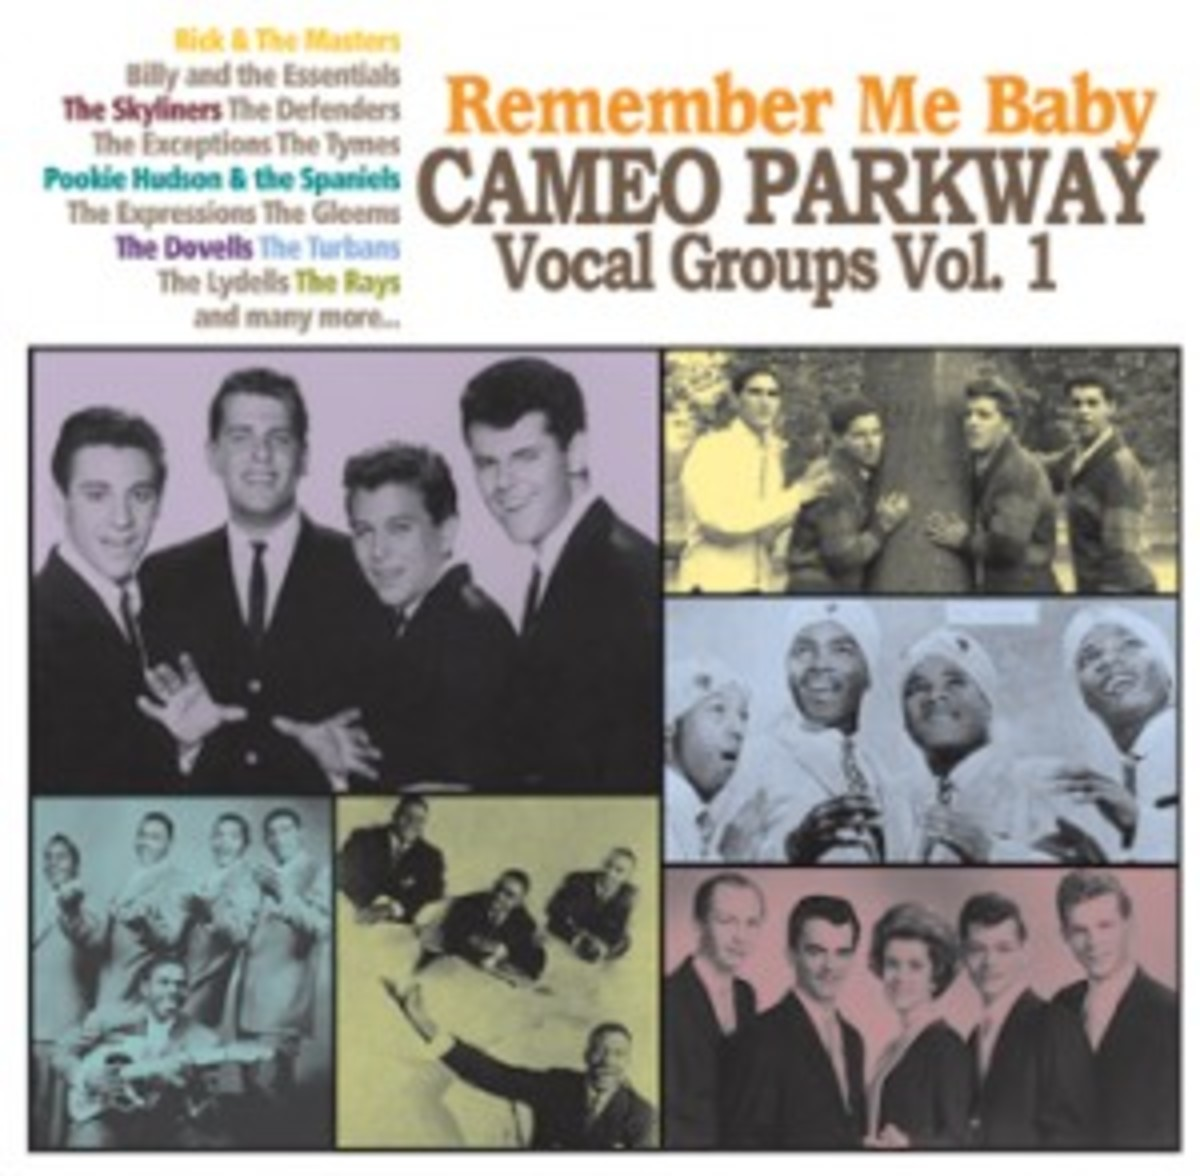 Remember Me Baby Cameo Parkway Vocal Groups Volume 1